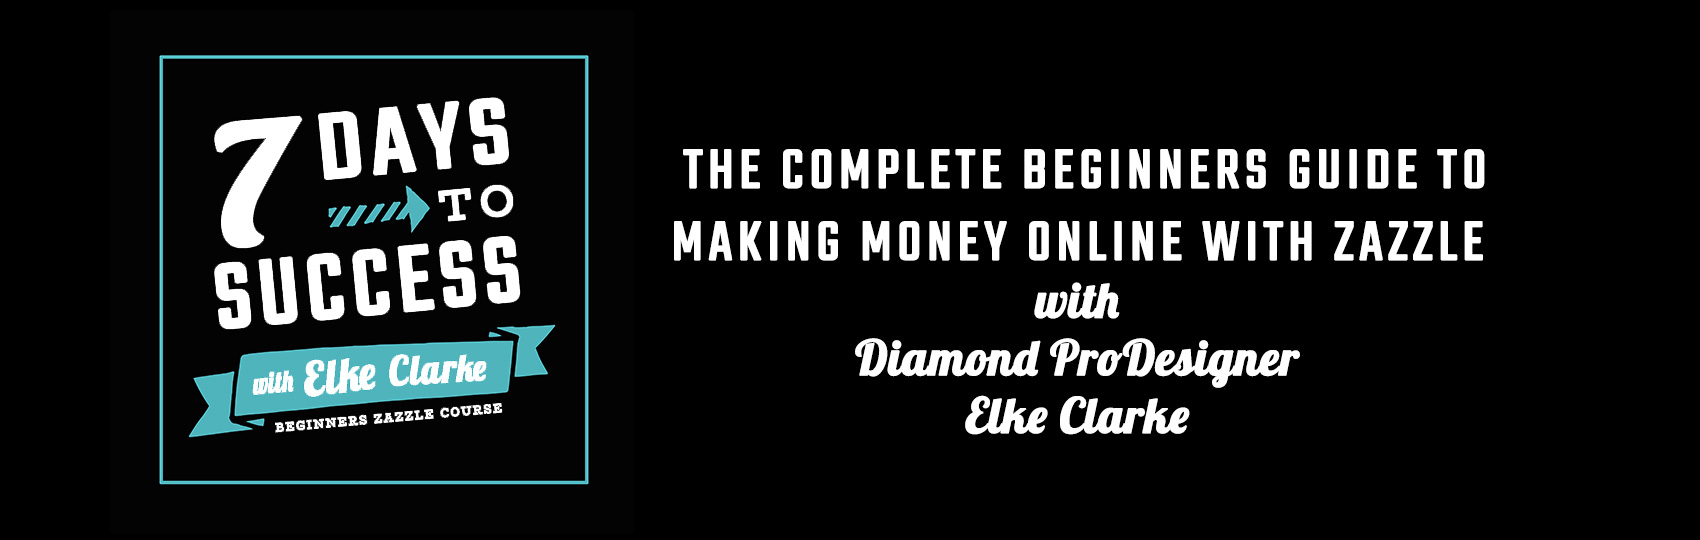 Header Banner for 7 Days to Success a Beginners Course on How to Make Money Online with Zazzle by Diamond ProDesigner Elke Clarke